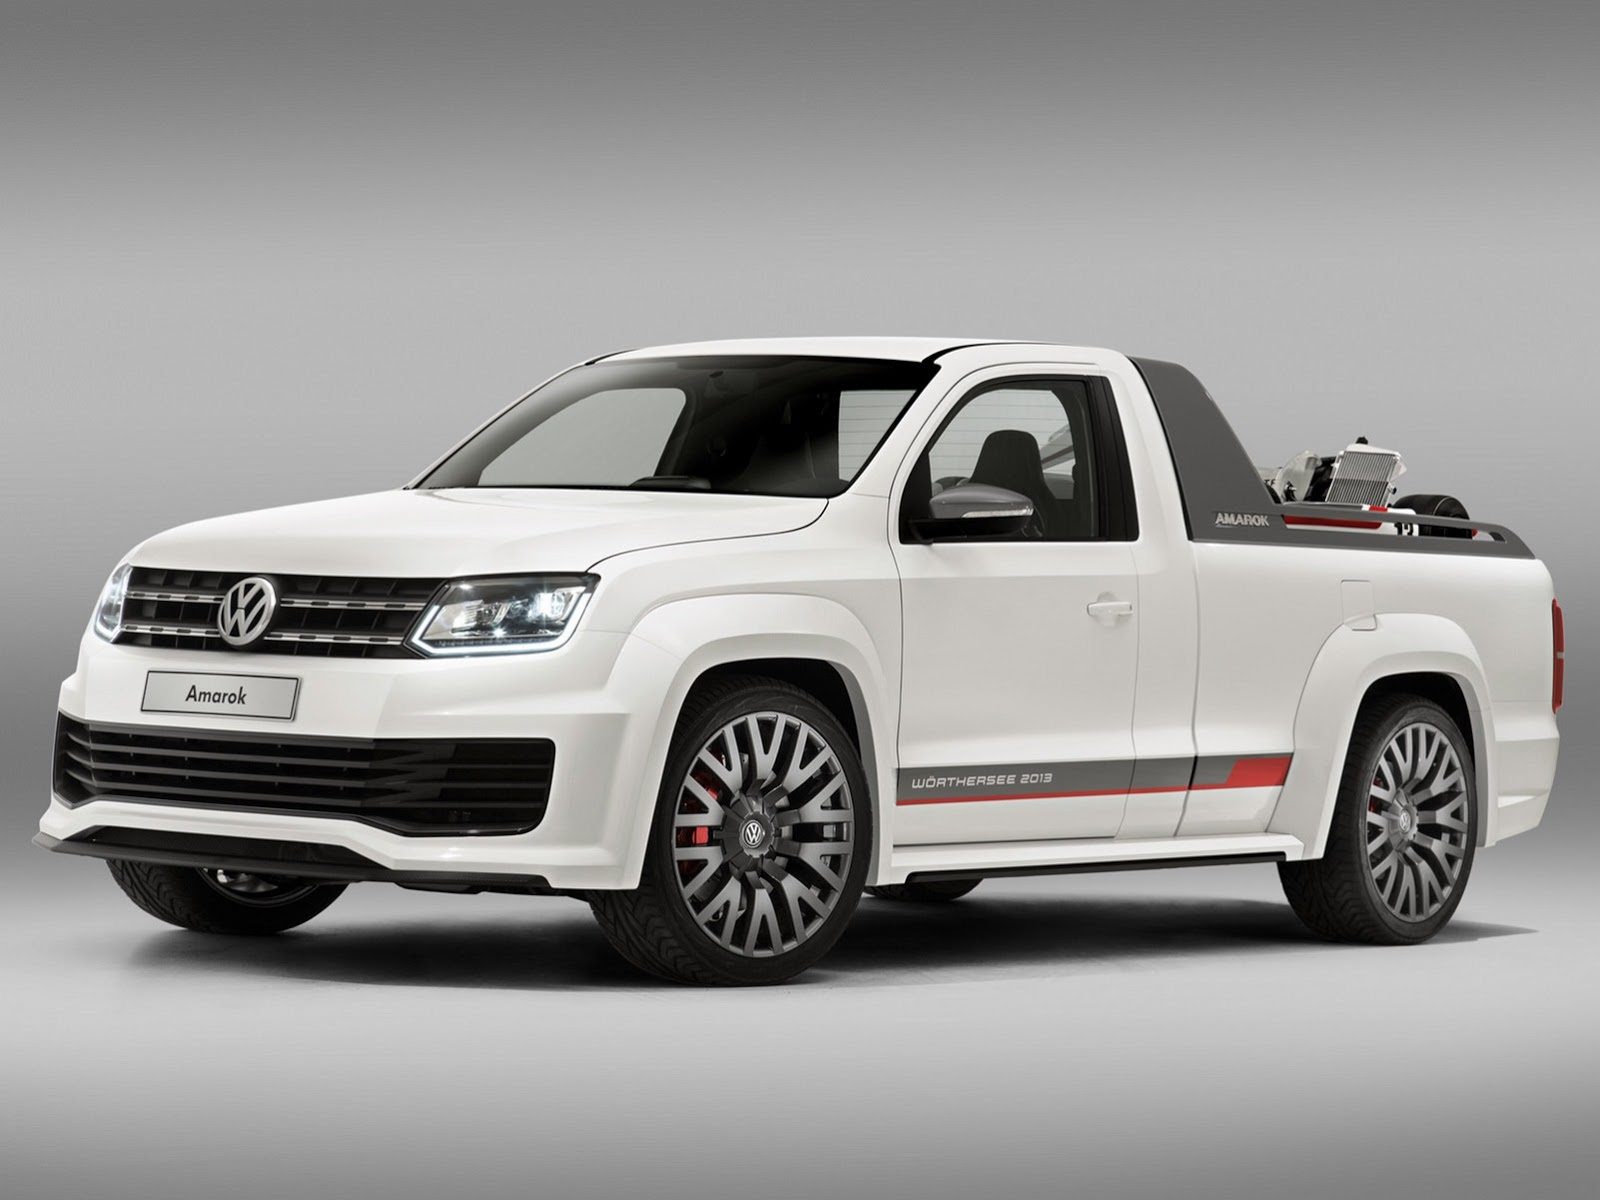 volkswagen cars news amarok r style concept. Black Bedroom Furniture Sets. Home Design Ideas